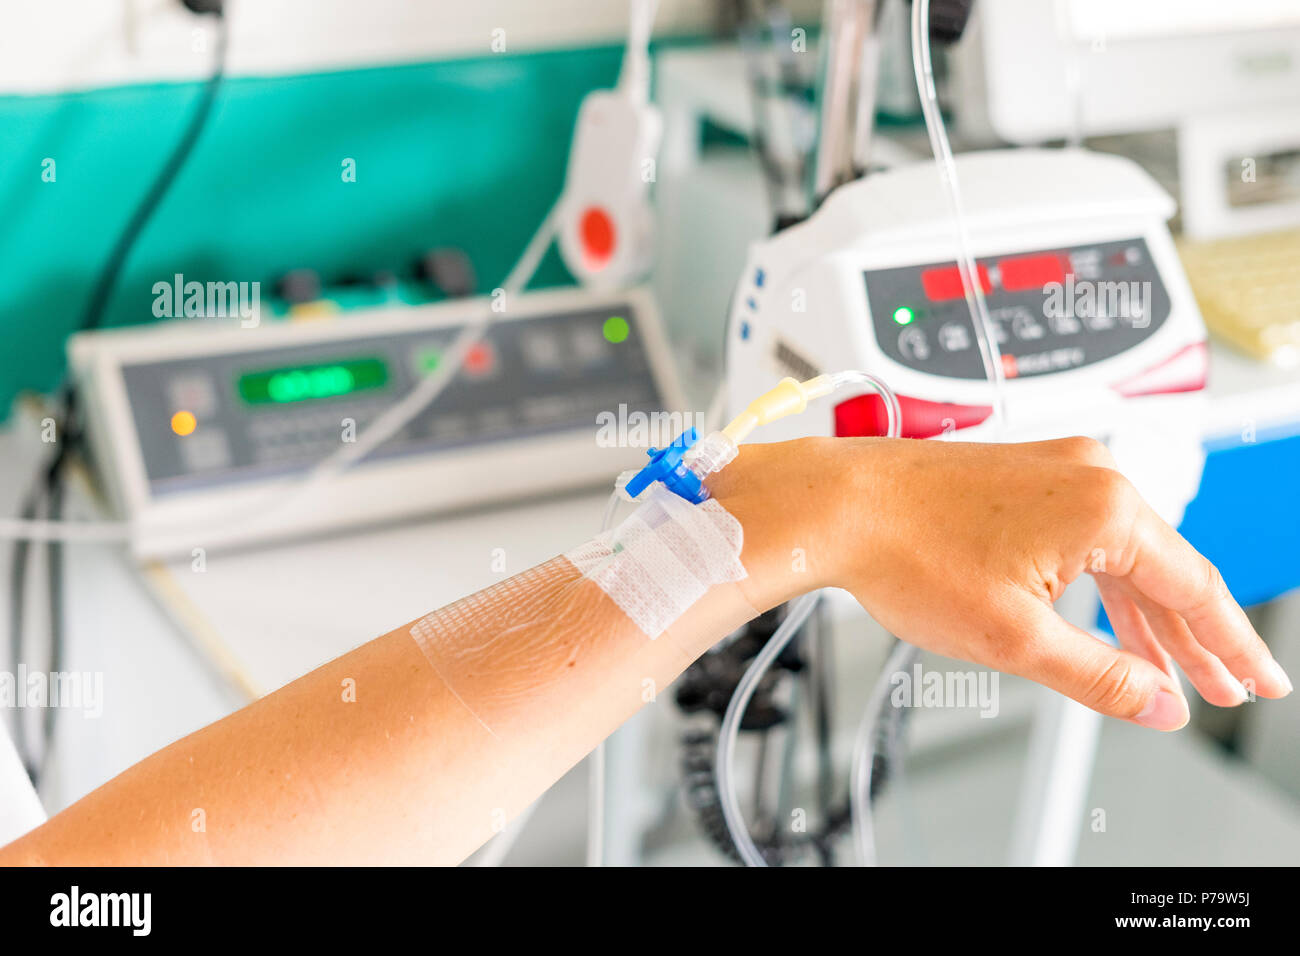 Hand with peripheral venous catheter and equipment to dose epidural during delivery - Stock Image